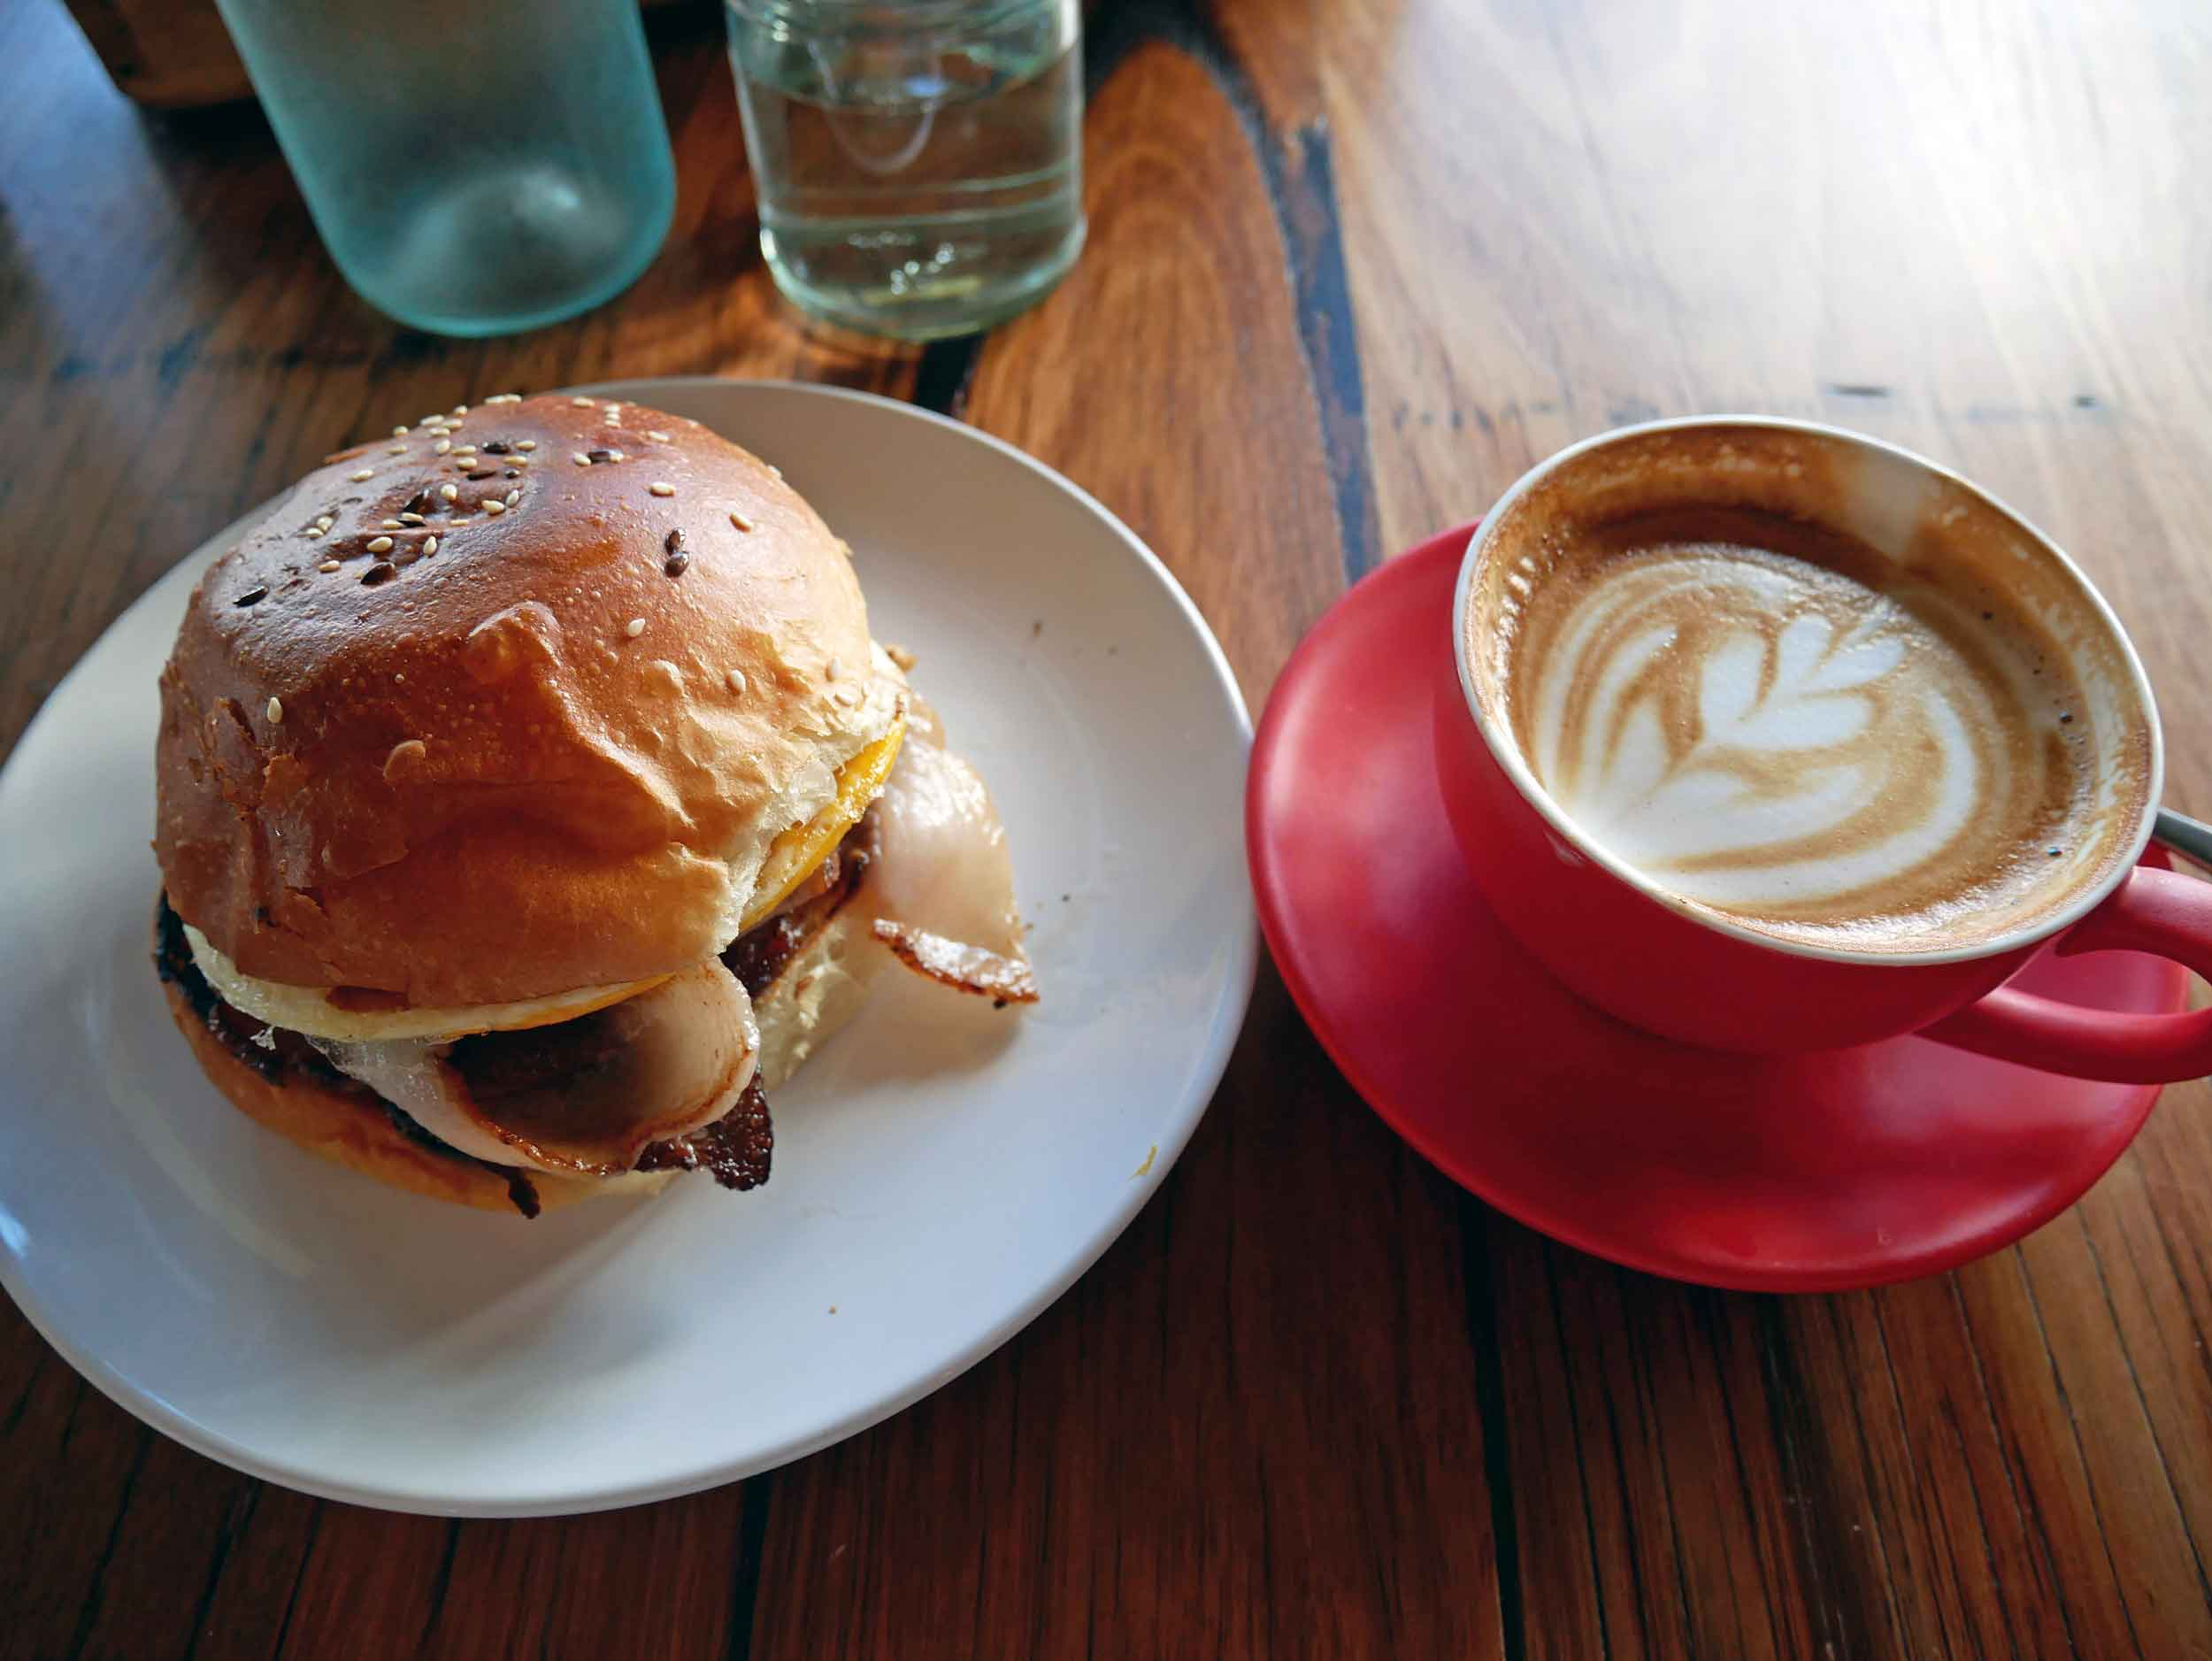 The bacon and egg on a roll (smothered in BBQ sauce) was melt-in-your-mouth goodness (Jan 24).